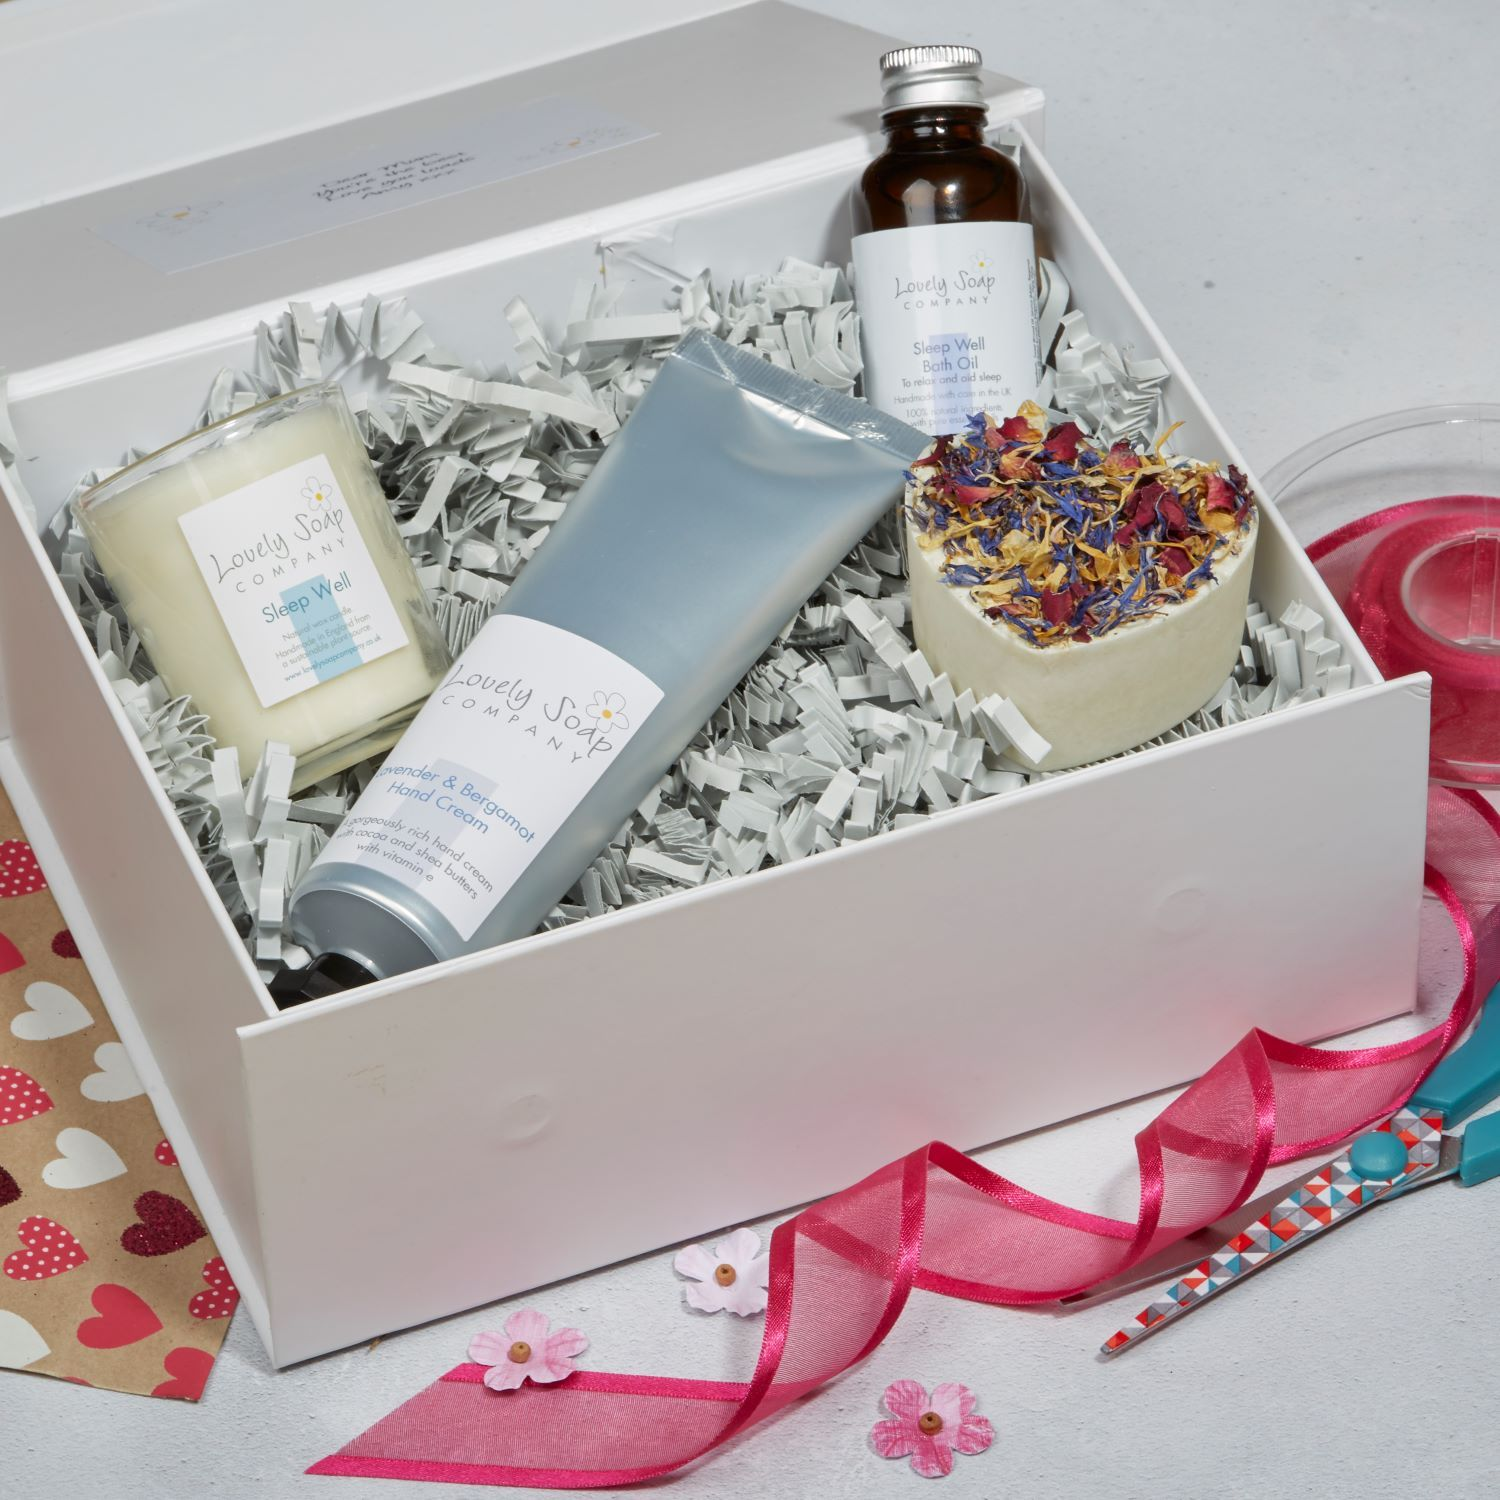 Aromatherapy spa pamper gift by Lovely Soap Co